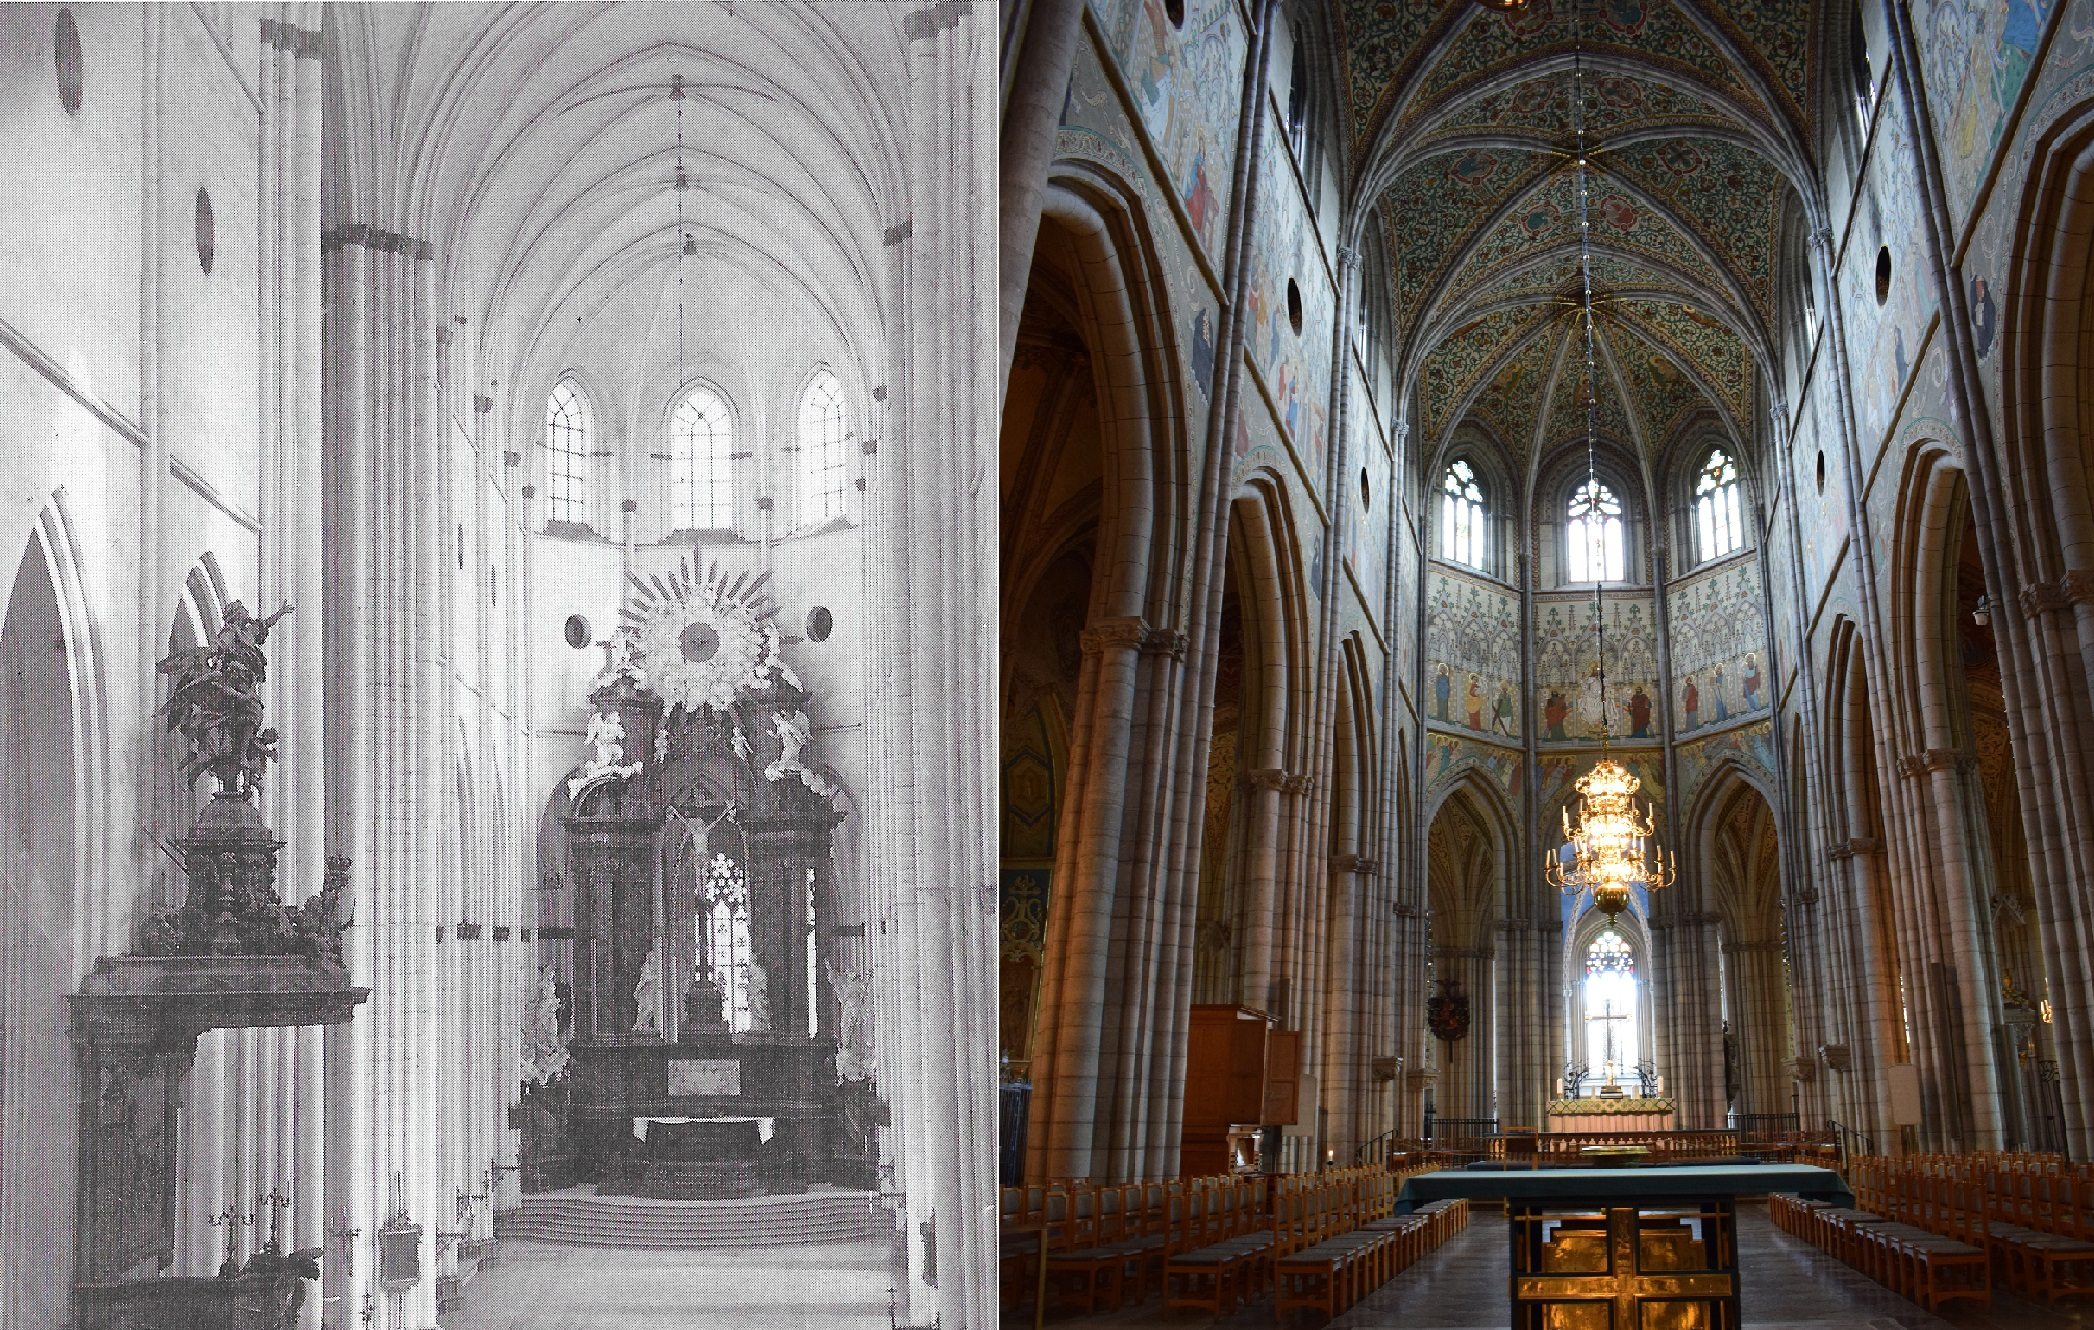 baroque altar (photo from 1873) and present altar (photo 2017)